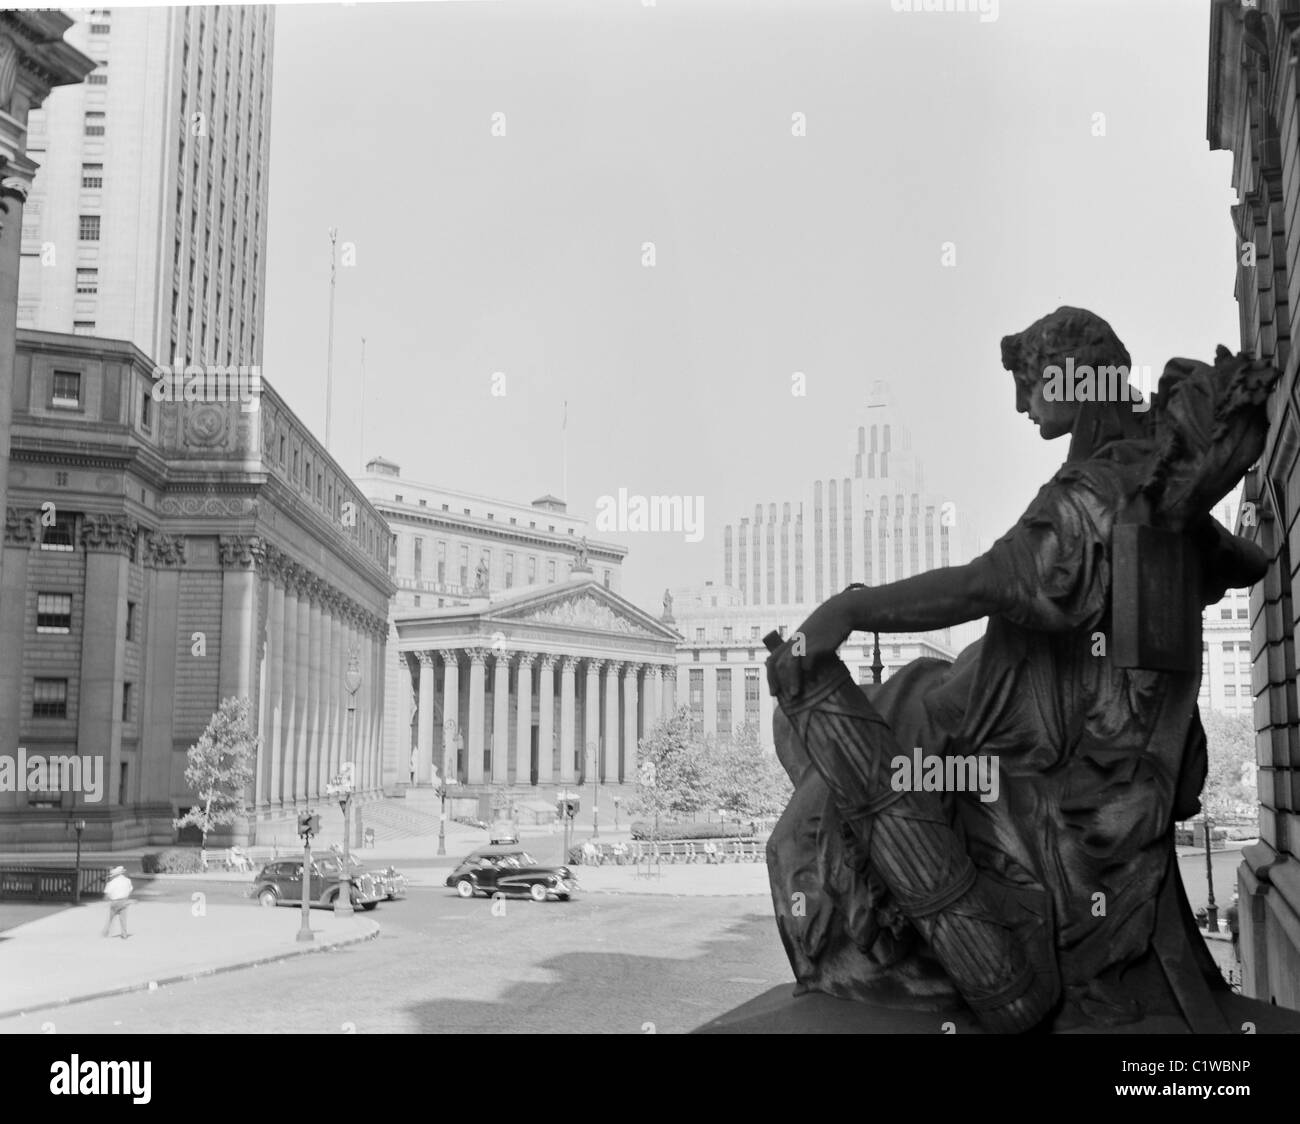 USA, New Yorks State, New York City, Foley Sqaure during sunny day - Stock Image